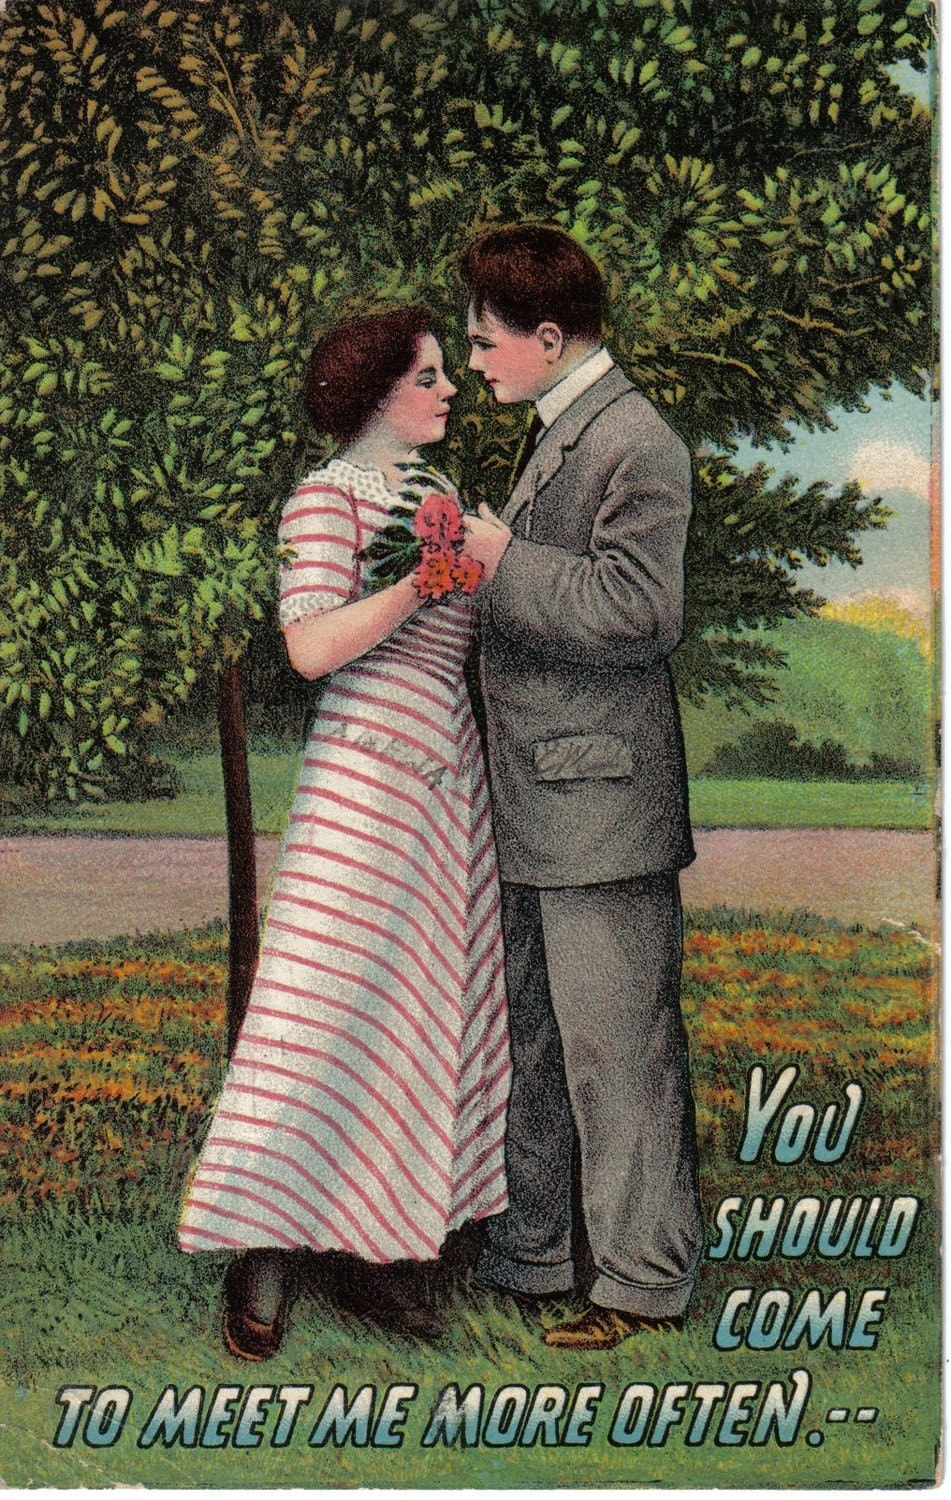 Lovers in Love Under a Tree Postcard